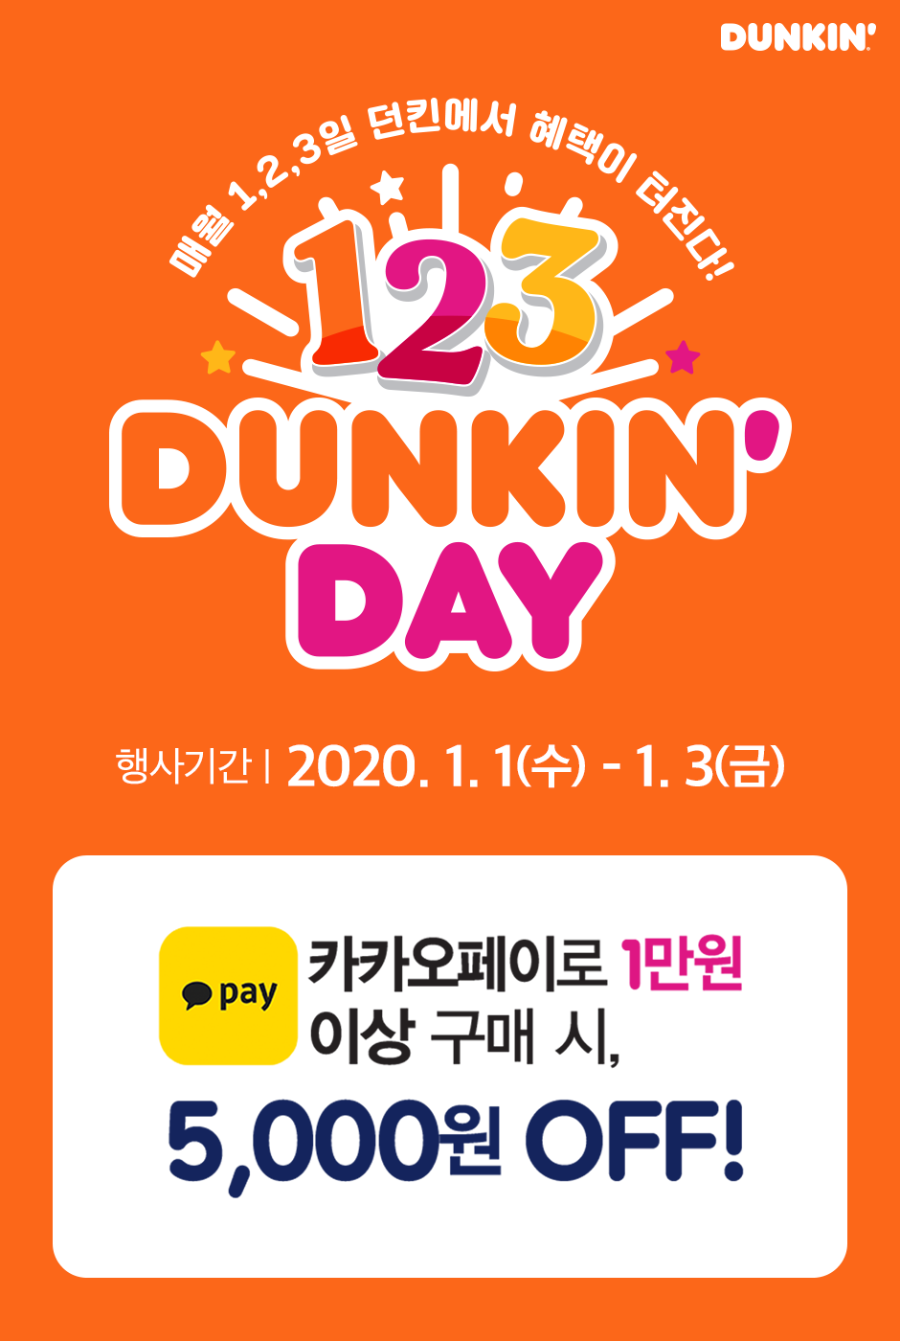 191227_event_dunkinday_kapay_pc.png